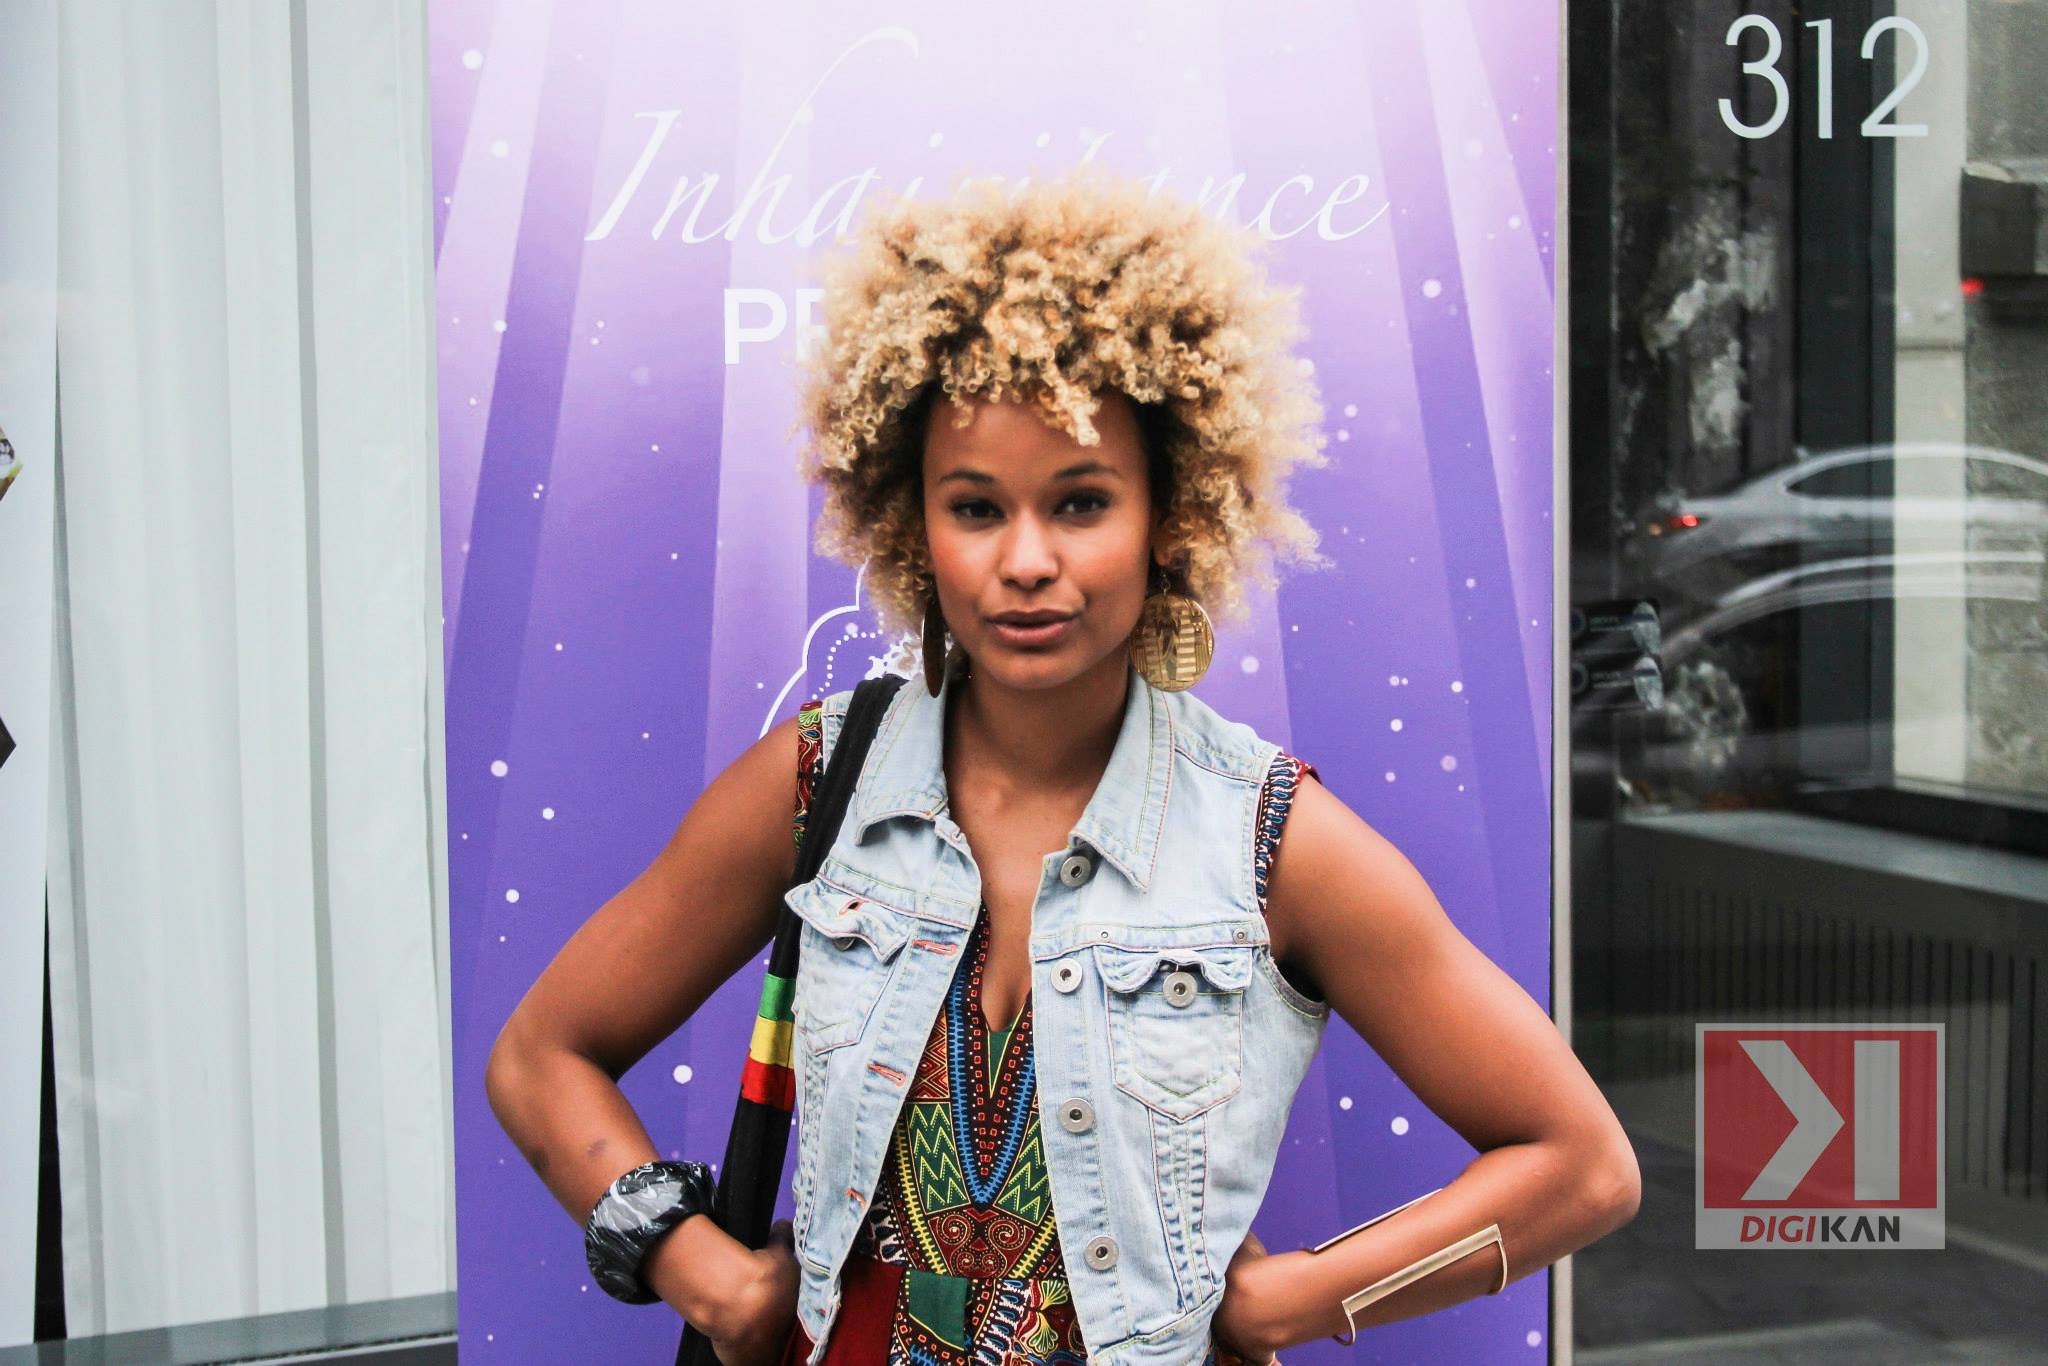 Natural Hair Congress Canada Picture Image -22